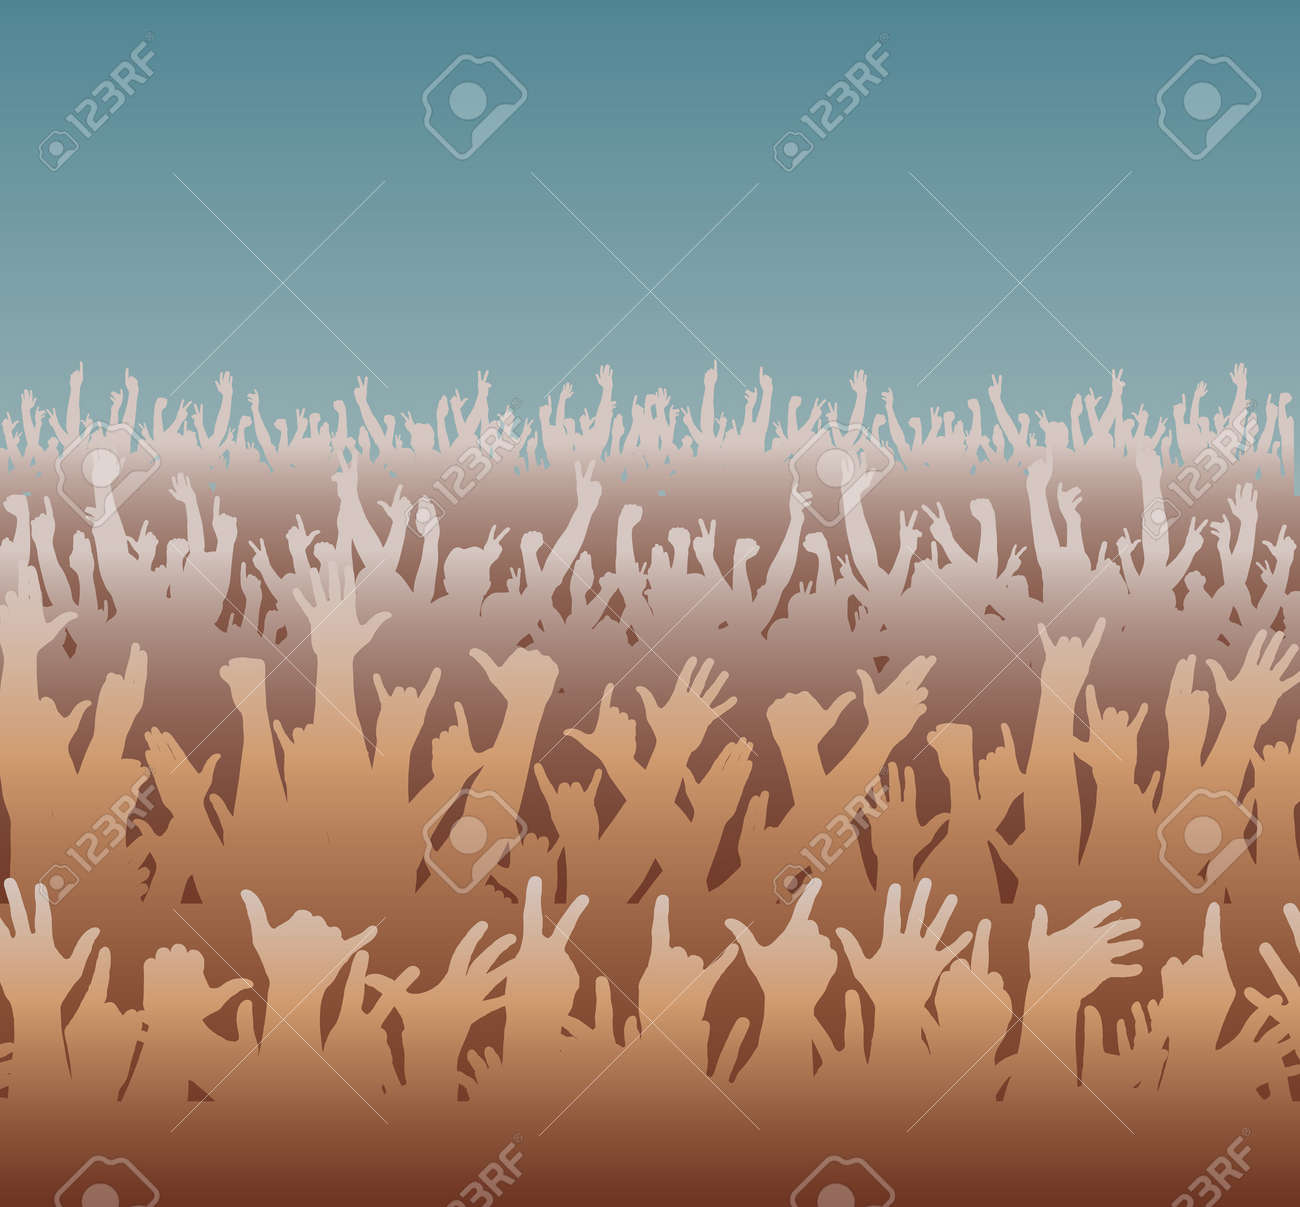 Editable illustration of a large crowd Stock Vector - 7551105